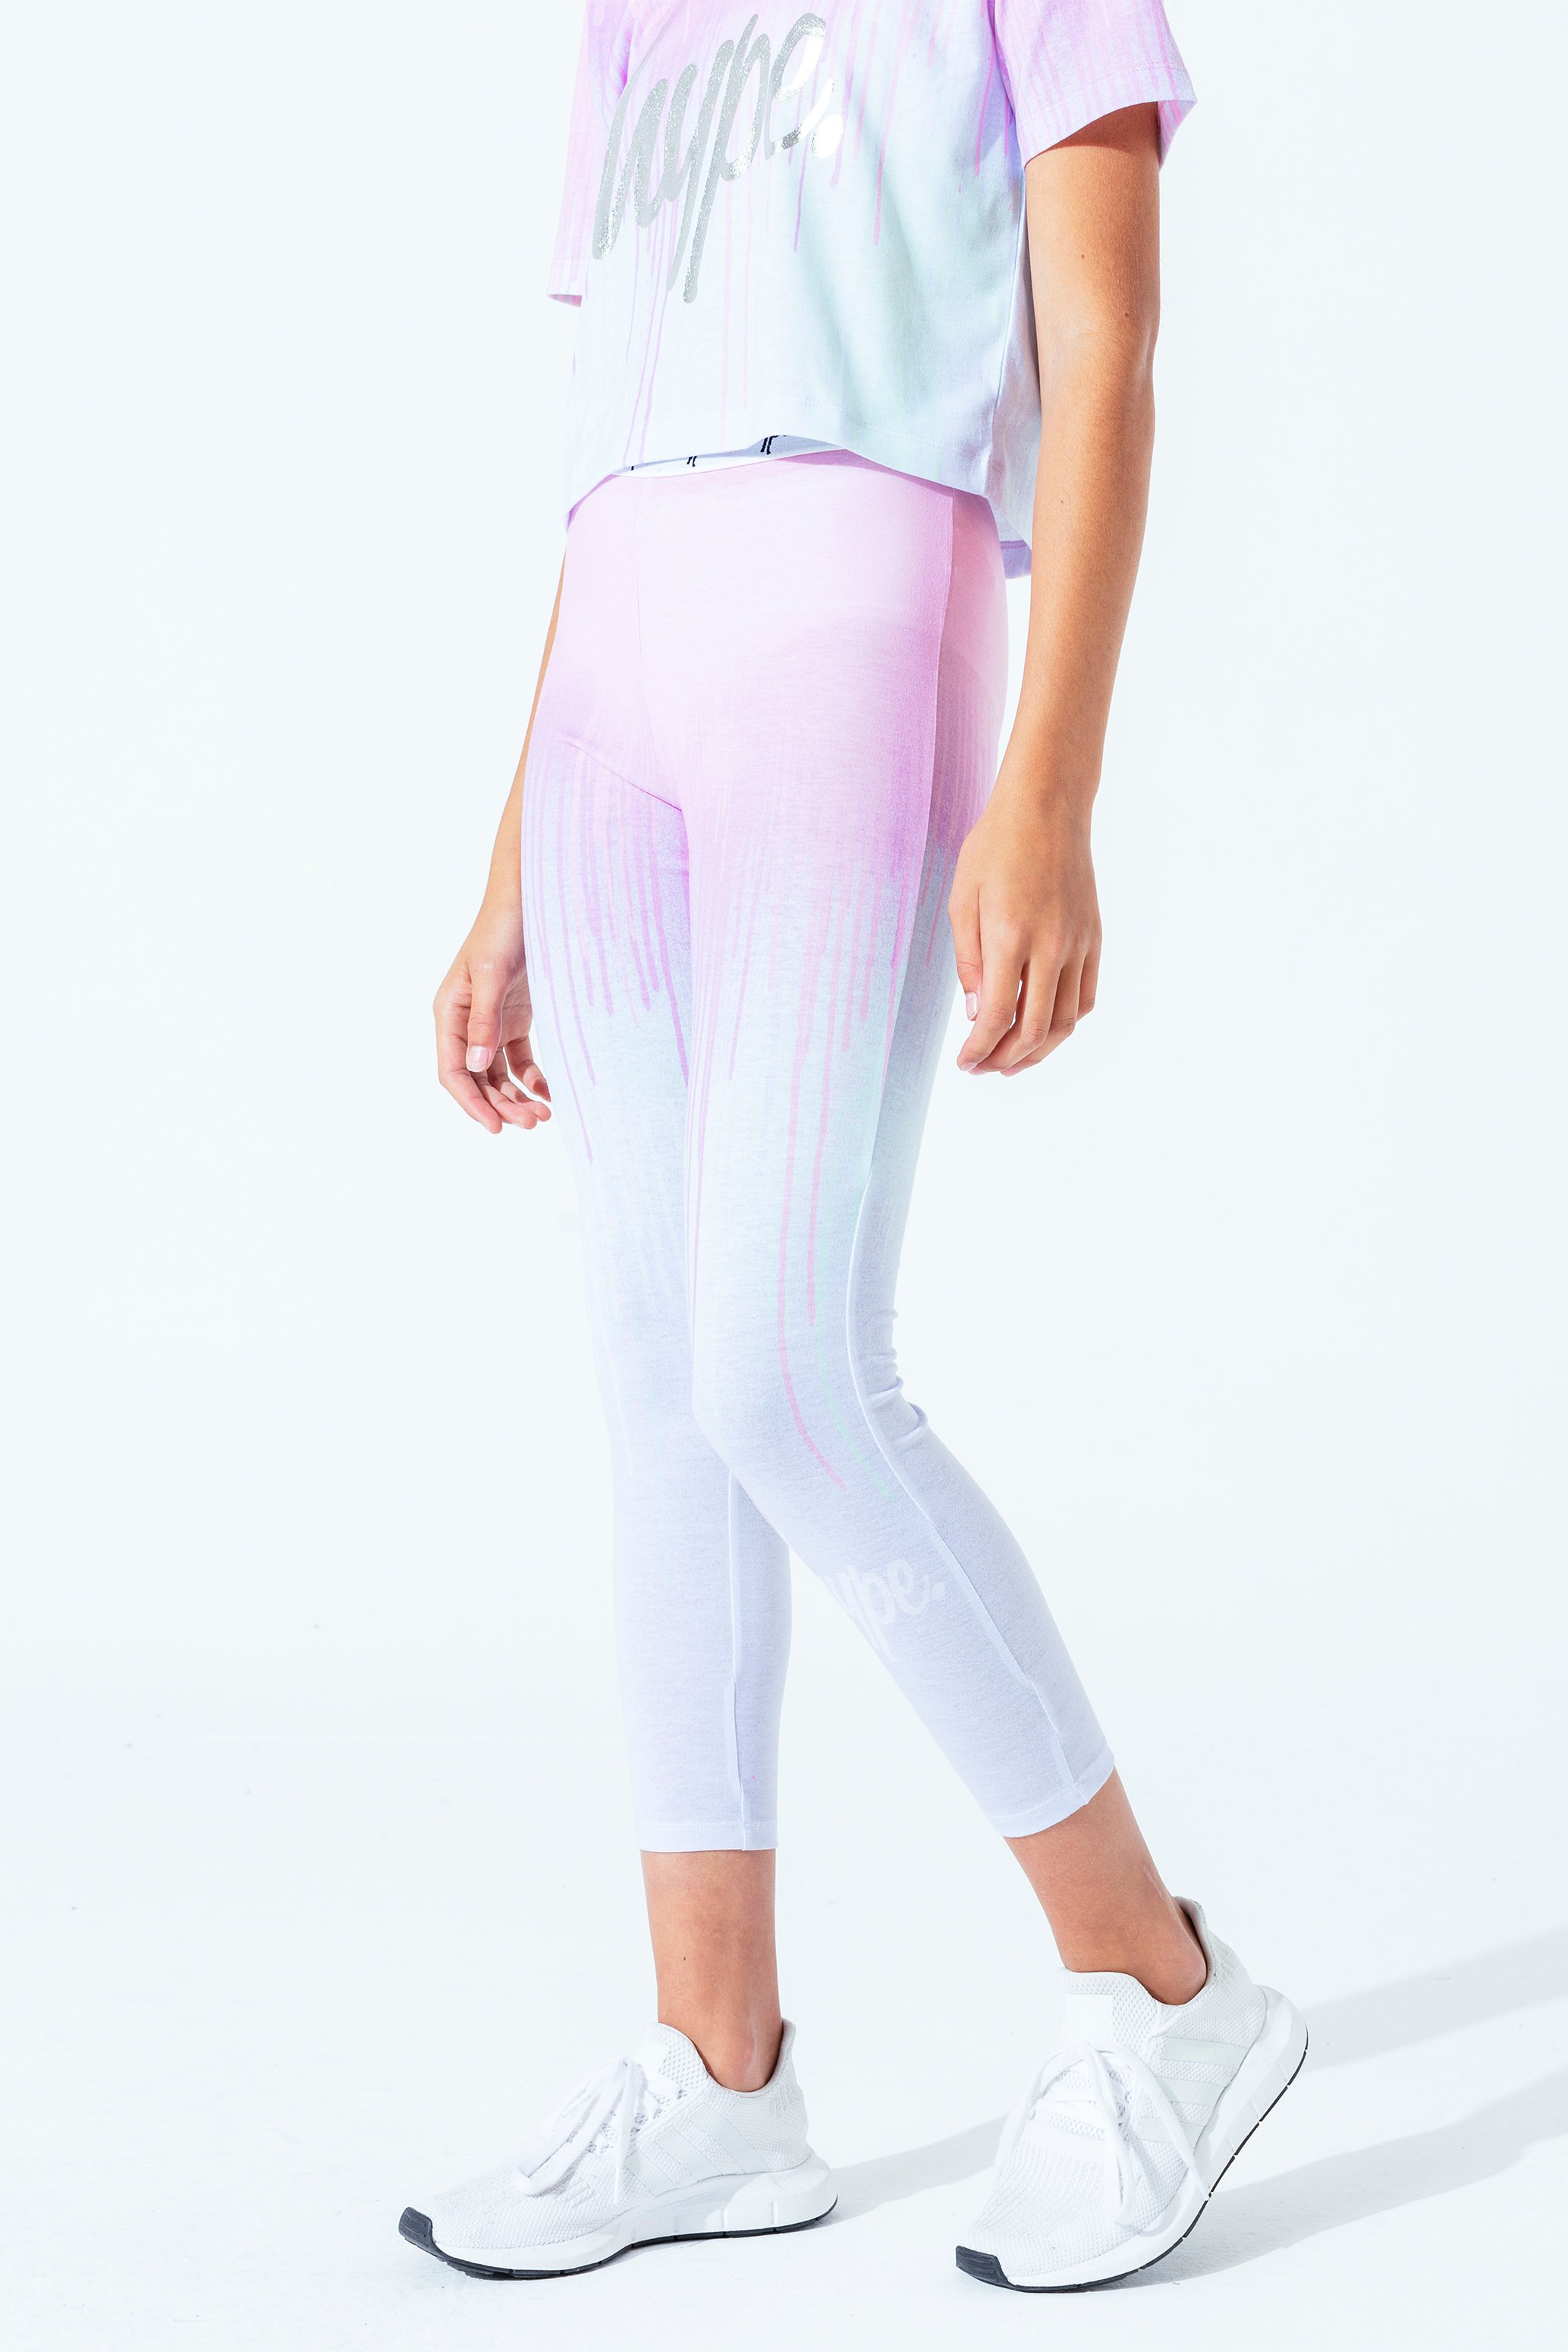 Hype Pastel Drips Kids Leggings | Size 9/10Y